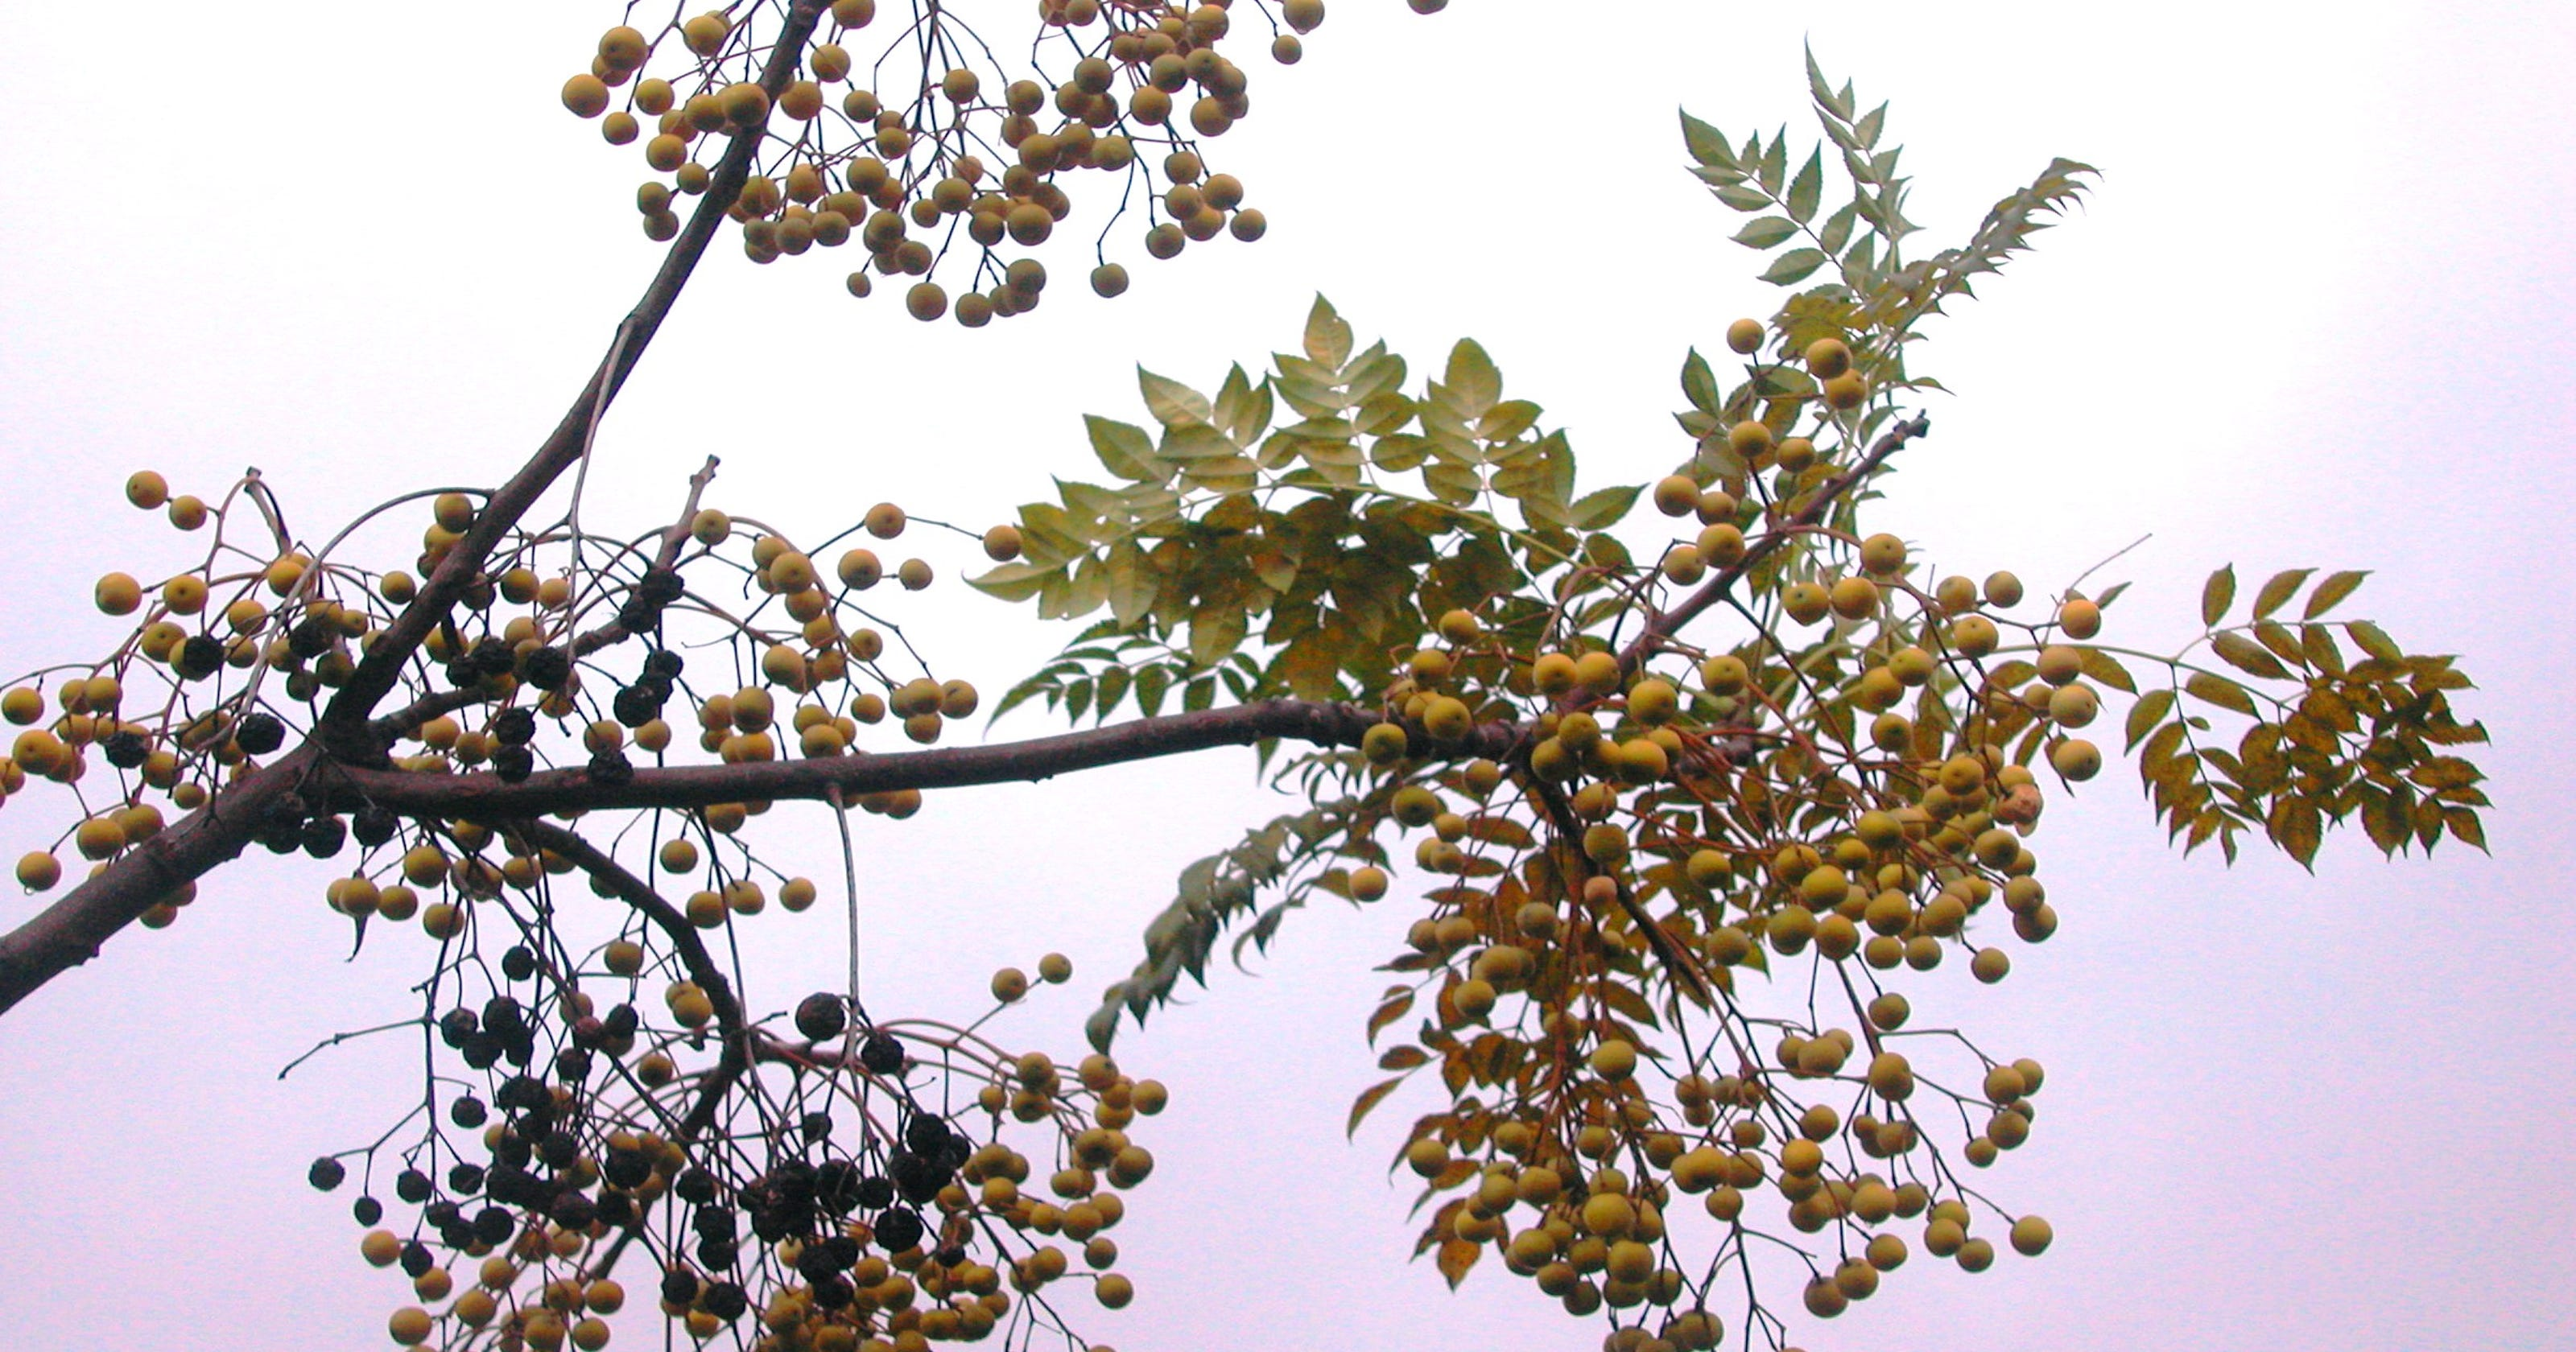 Part Ii More Fruit Of Poisonous Tree >> Fruits Of The Chinaberry Tree Are Poisonous